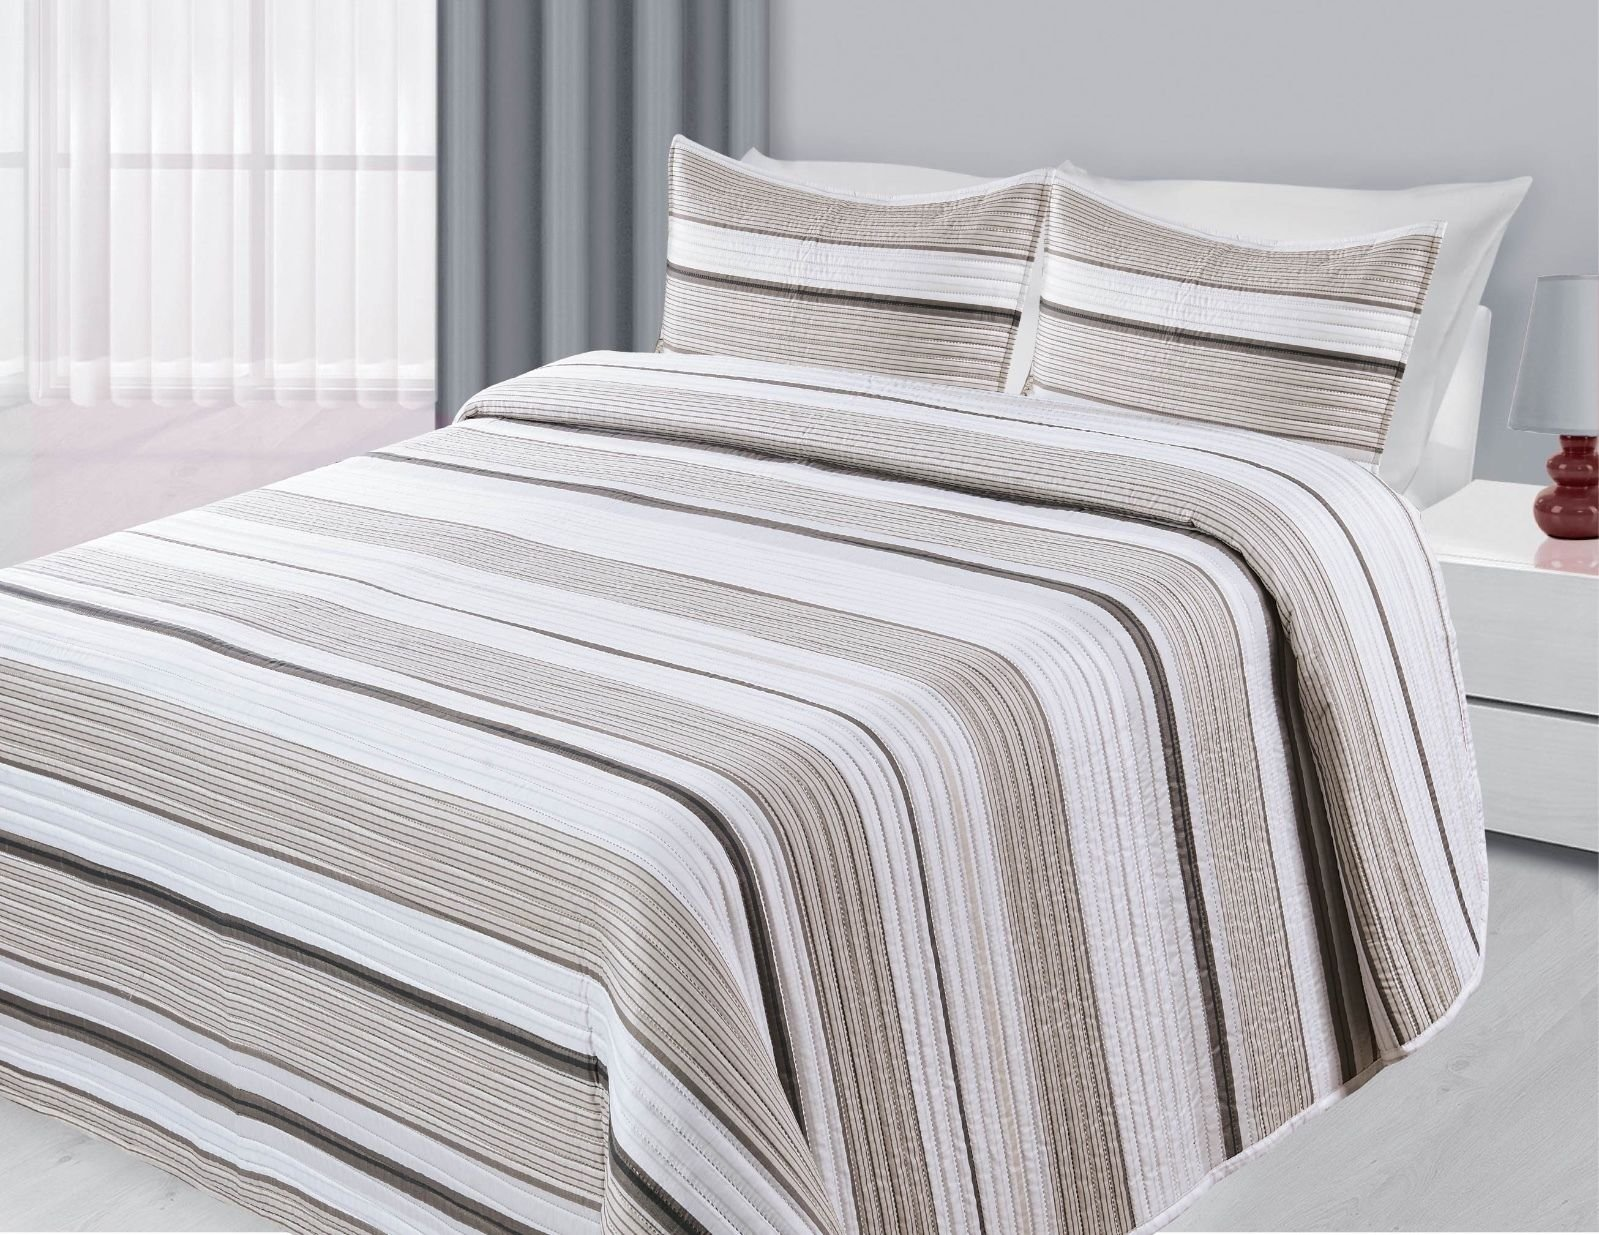 Reversible 3-Piece Quilted Printed Bedding Bedspread Coverlet New (Brown Stripe, Twin)